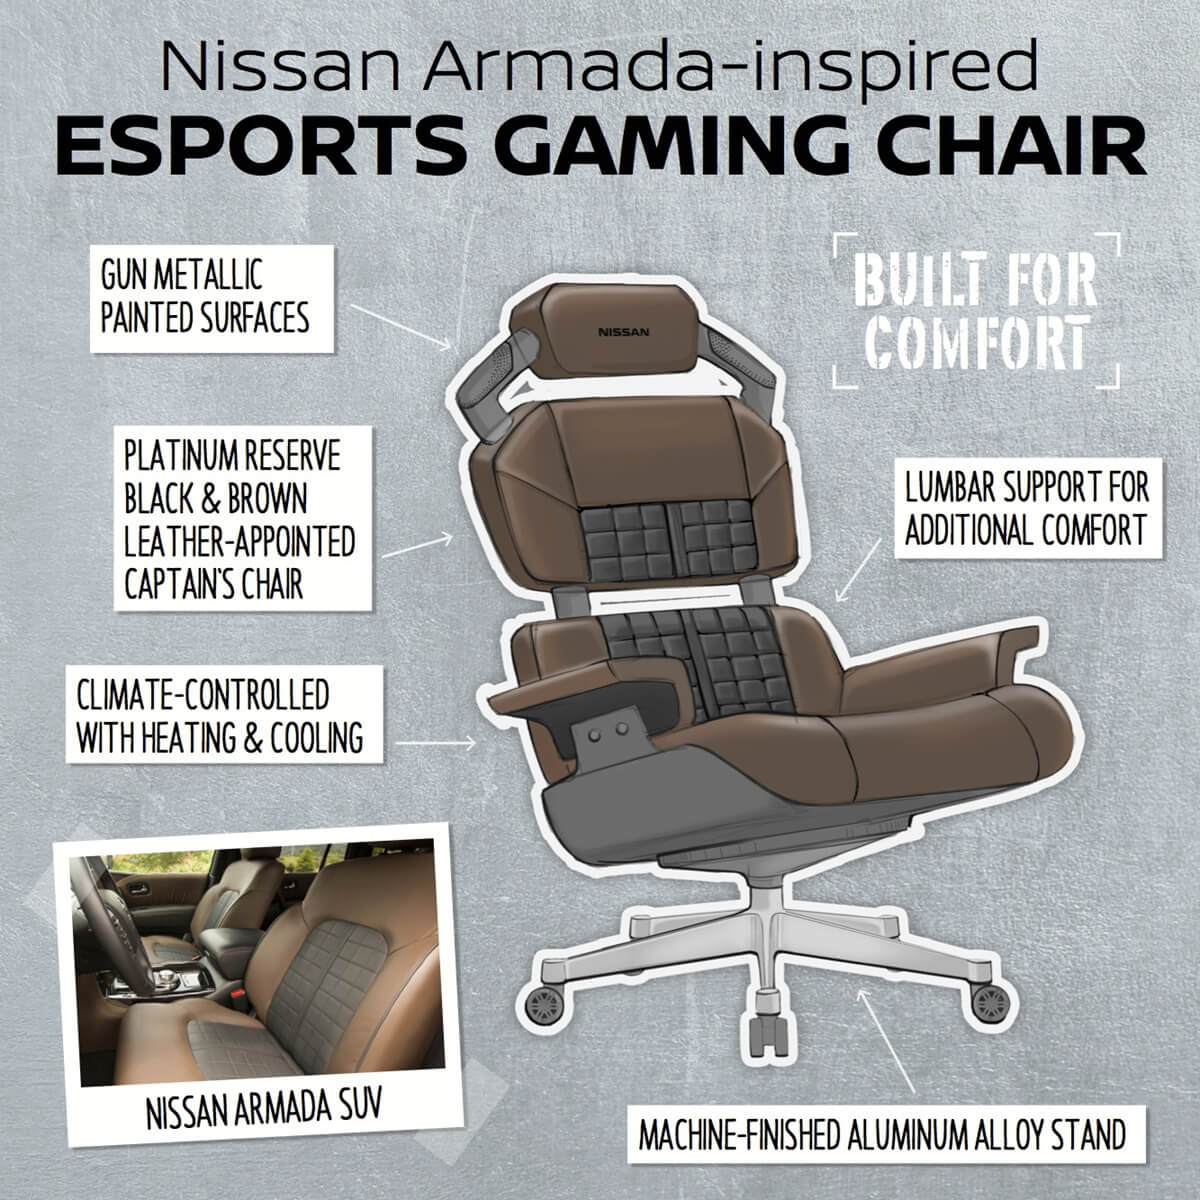 Ultimate-esports-gaming-chairs-Armada-source.jpg